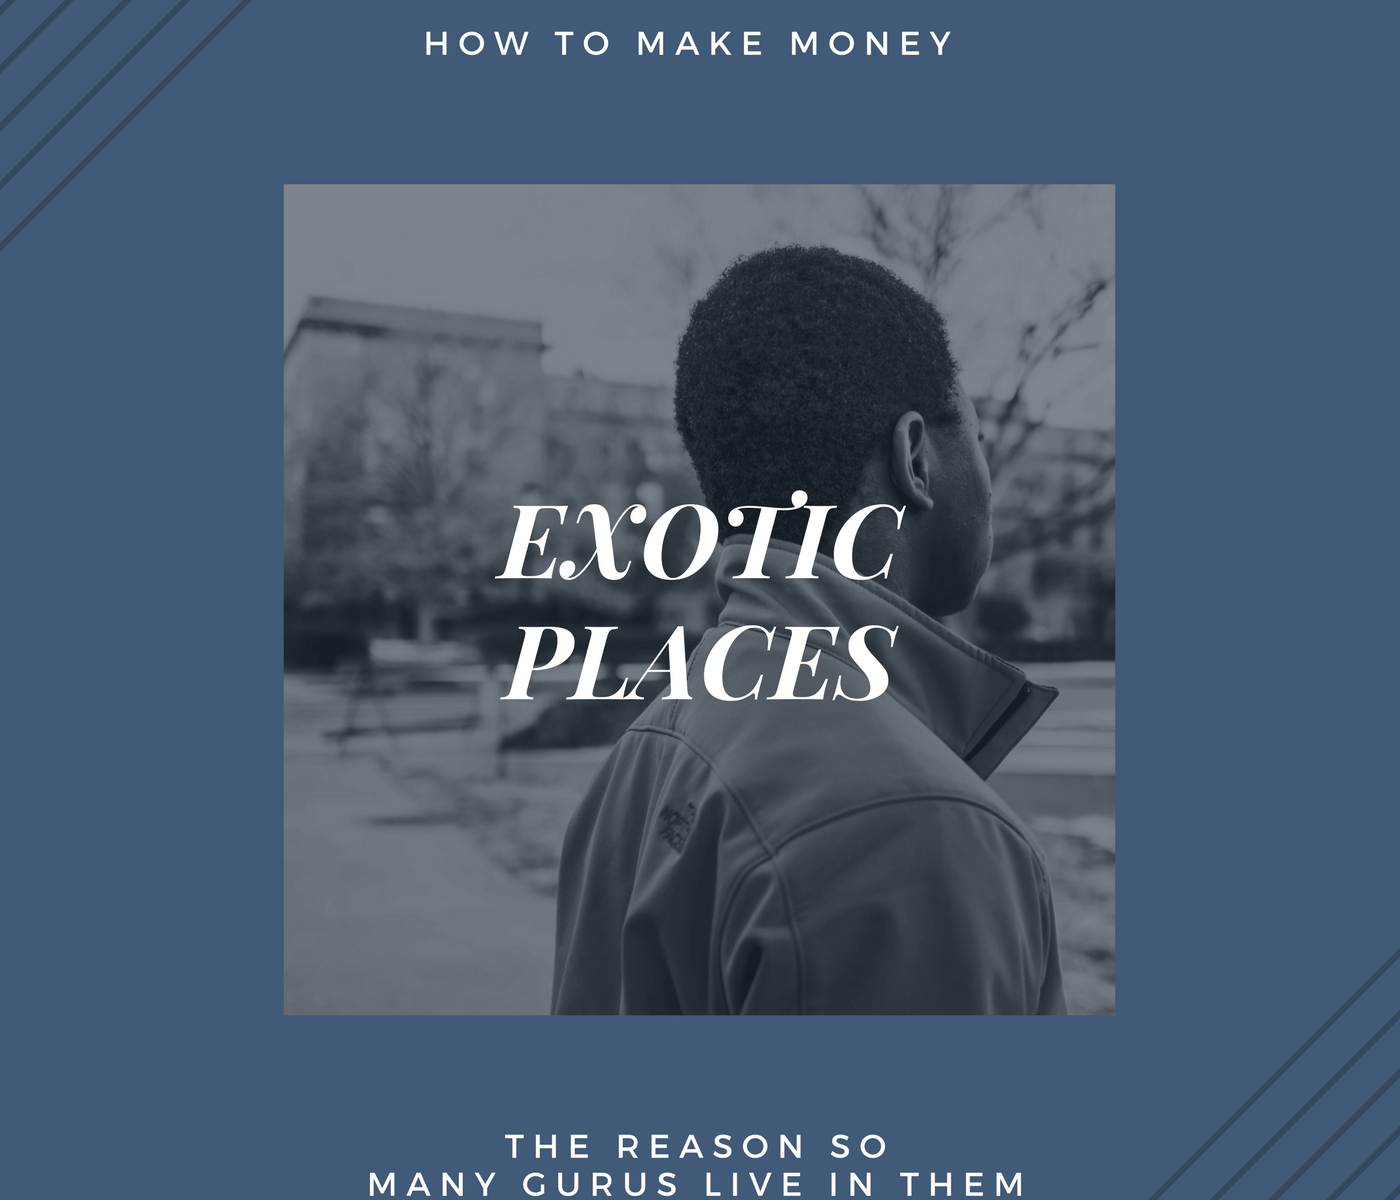 The Reason So Many How to Make Money Gurus Live in Exotic Places